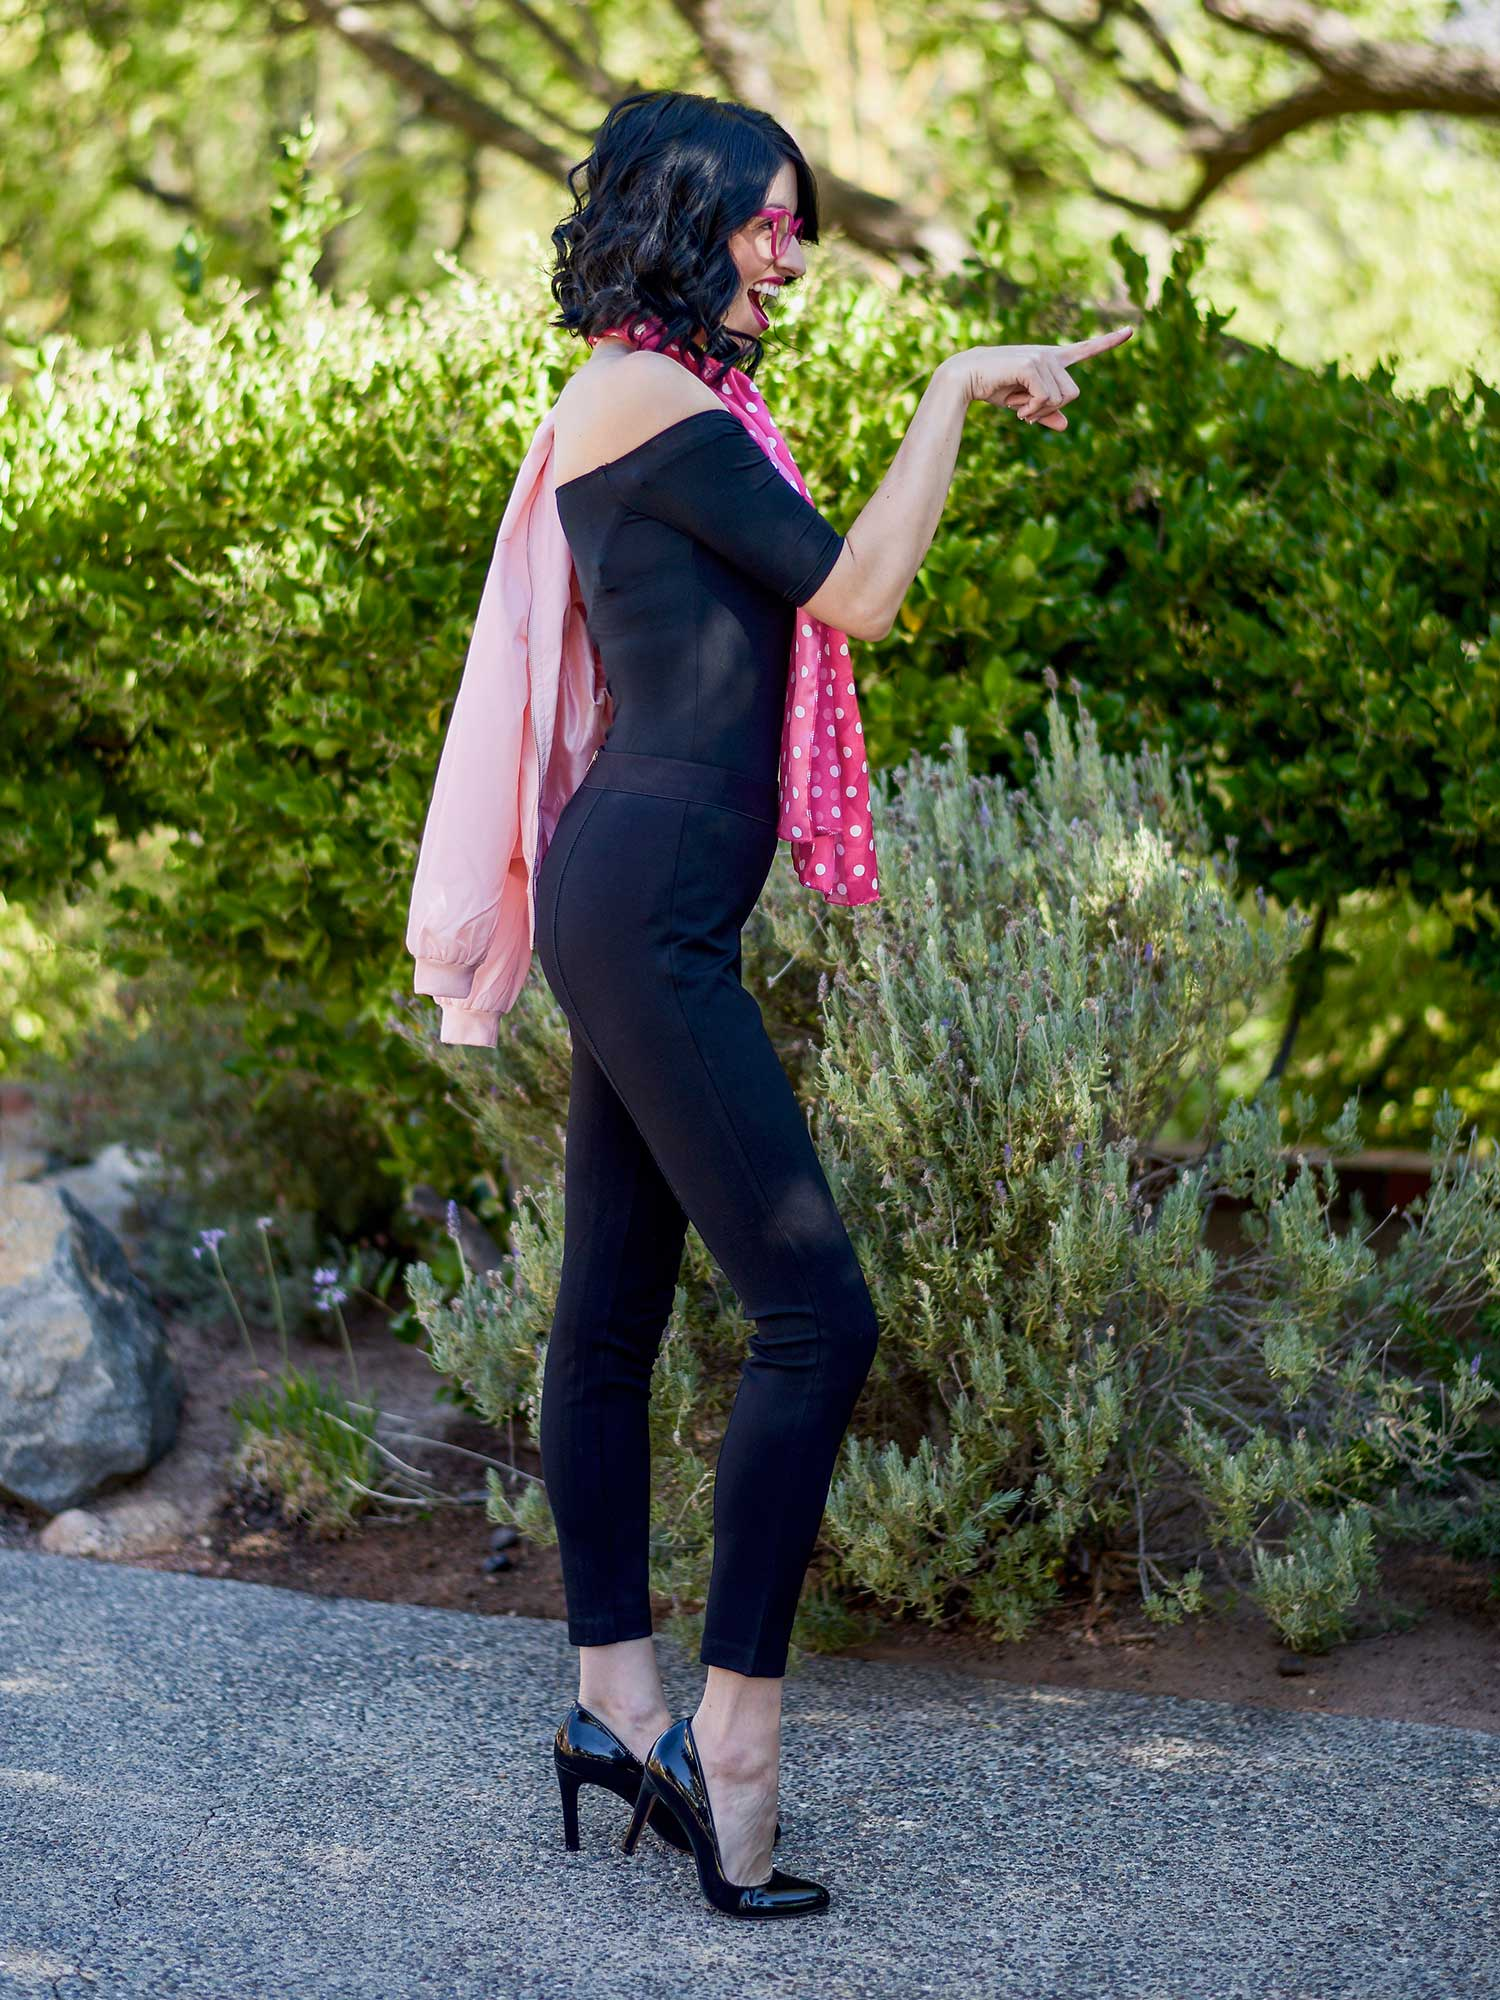 jenna-pilant-lucky-little-mustardseed-san-diego-fashion-blogger-halloween-2016-costume-ideas-grease-pink-lady-costume-7